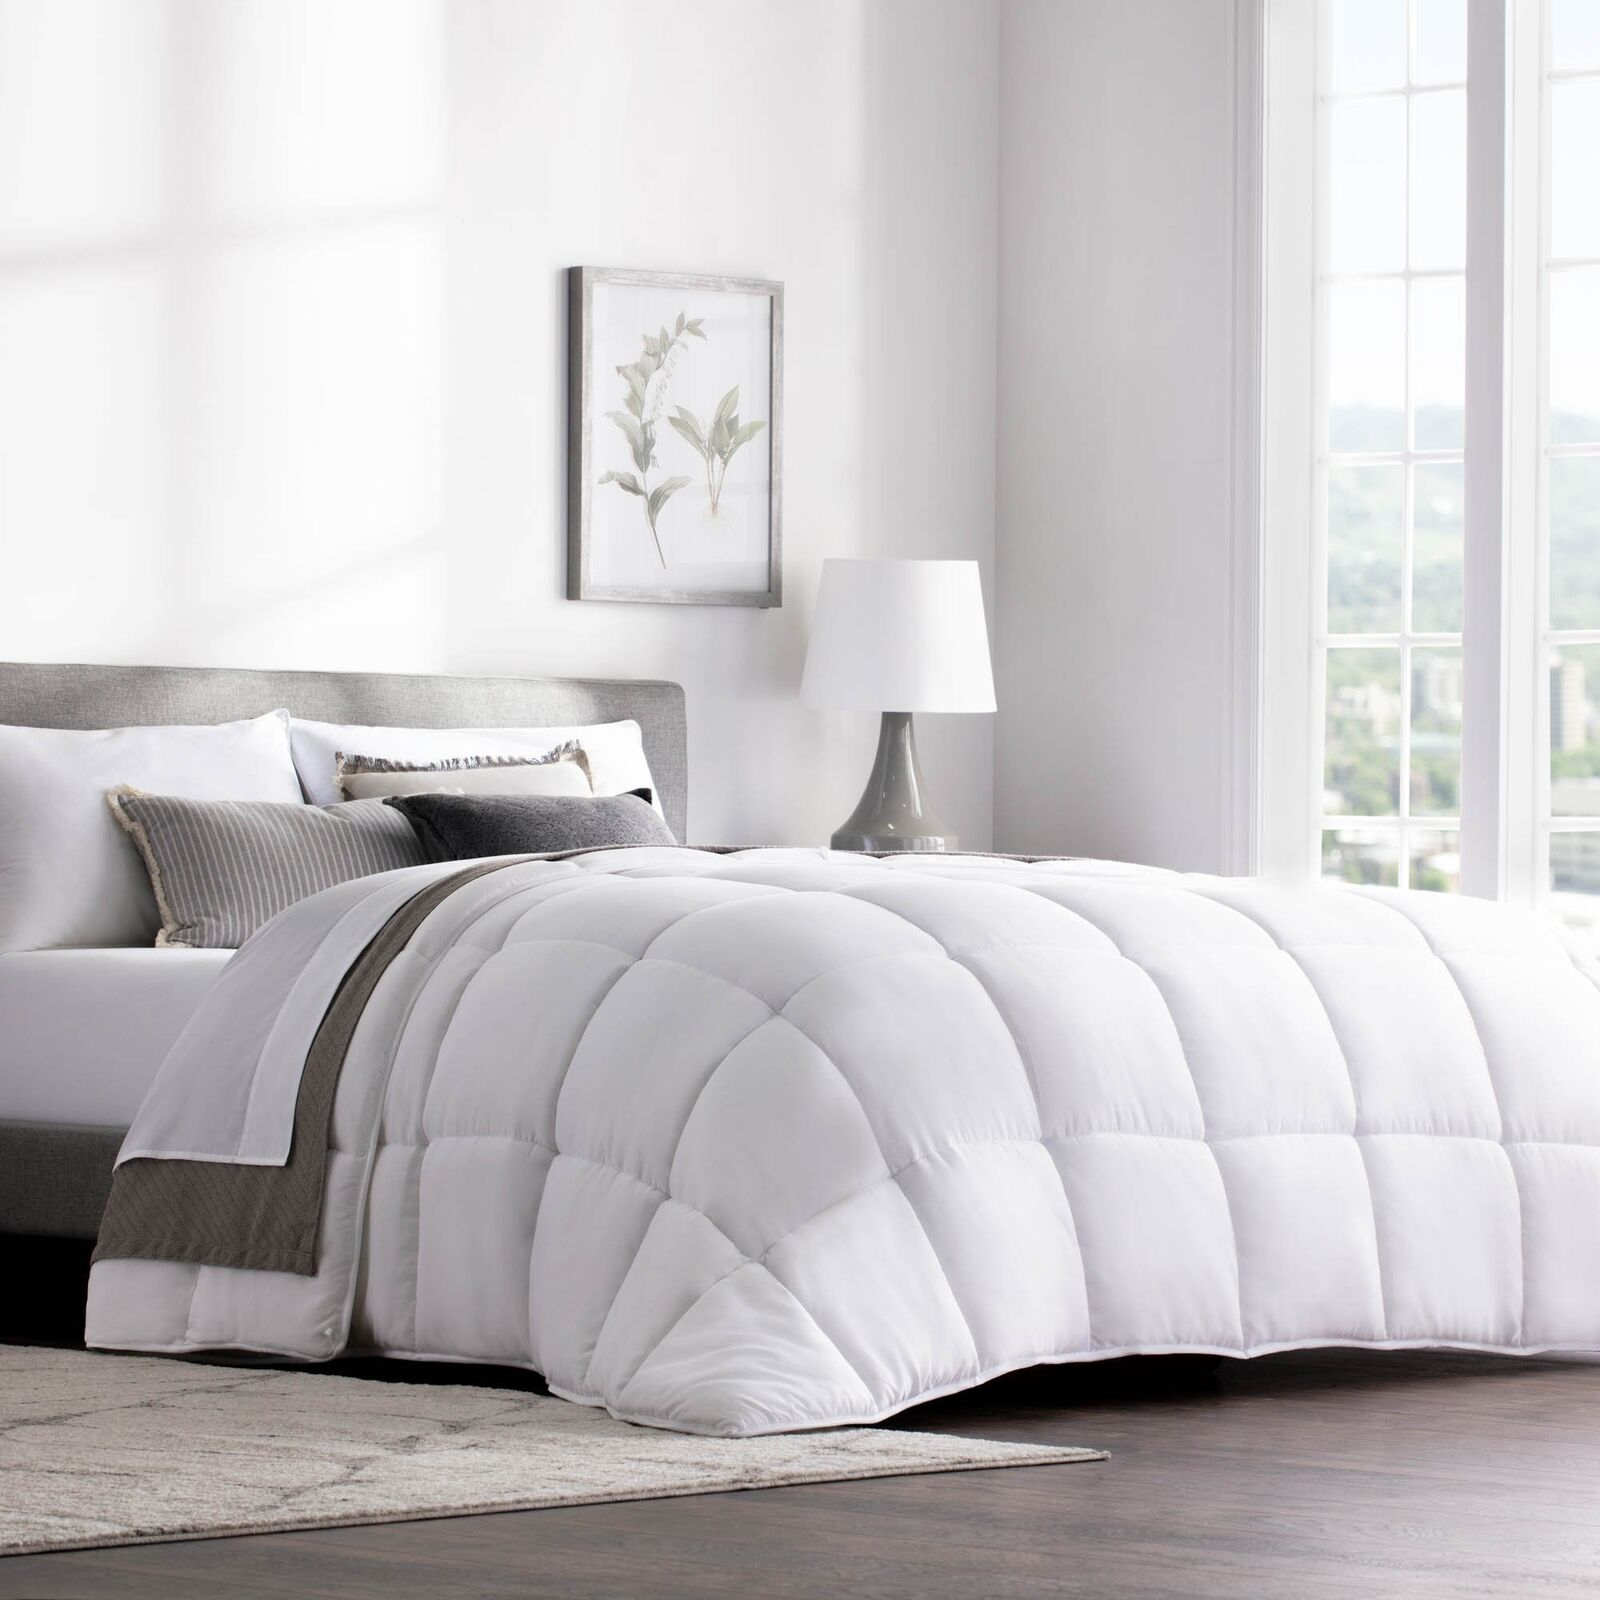 WEEKENDER Quilted Down Alternative Hotel-Style Comforter - Use as Duvet Insert